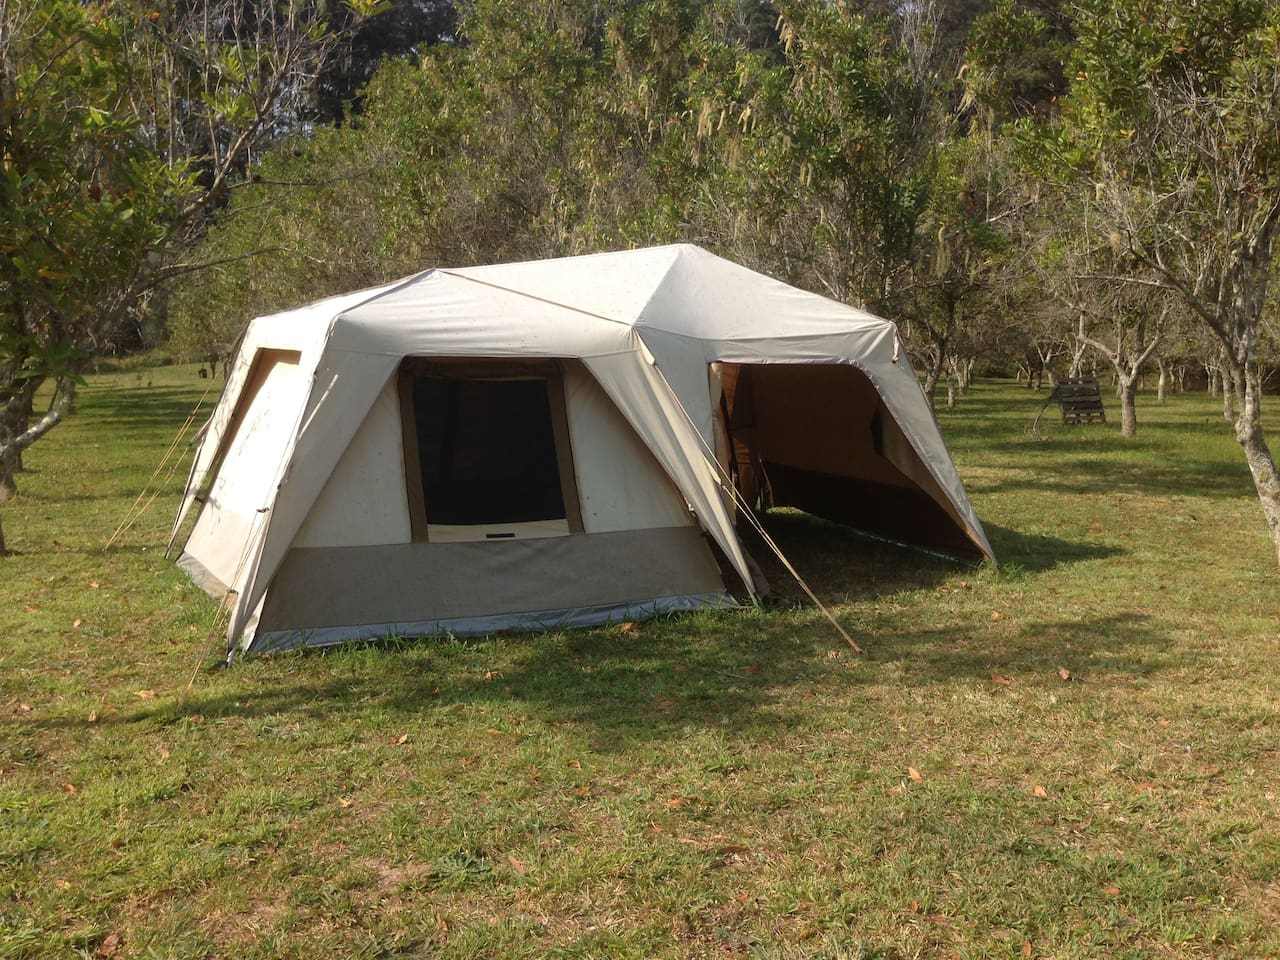 The tent is located between the rows of Macadamias